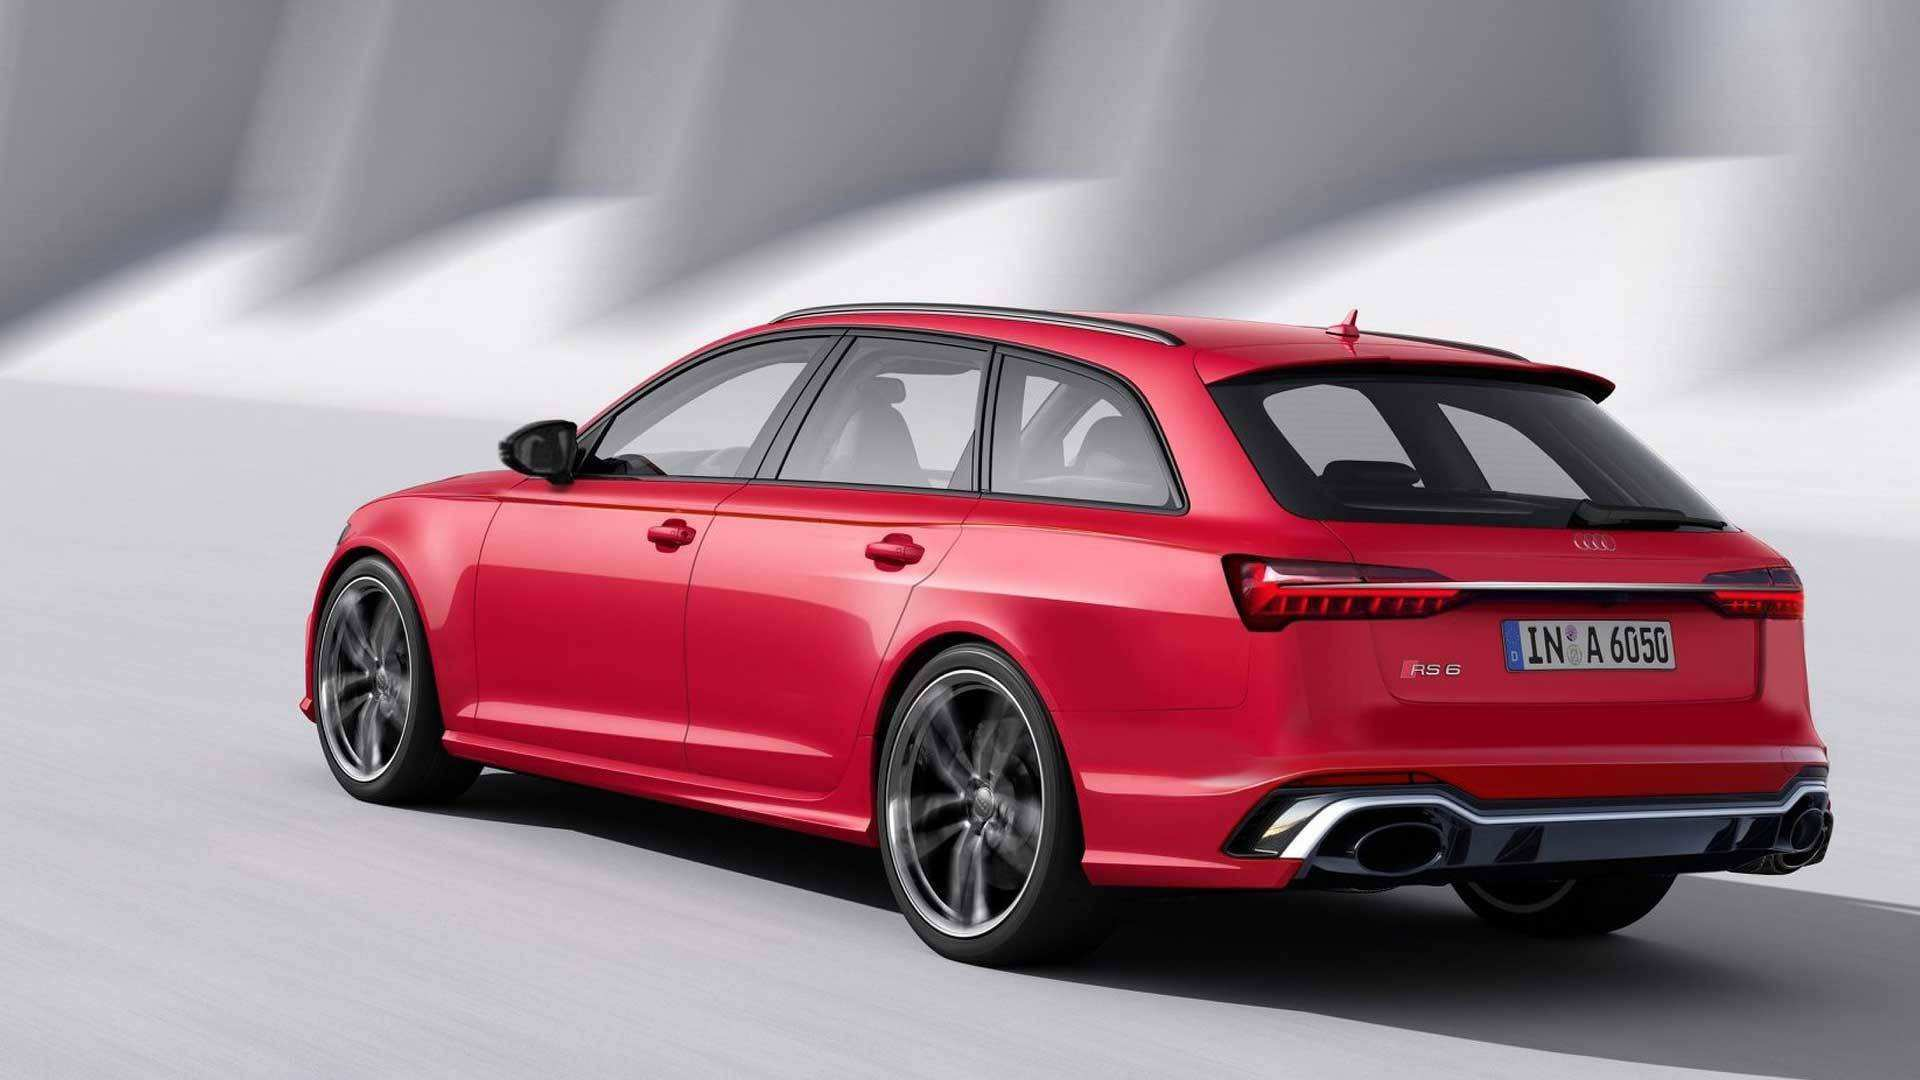 40 Concept of 2019 Audi Rs6 Price and Review for 2019 Audi Rs6